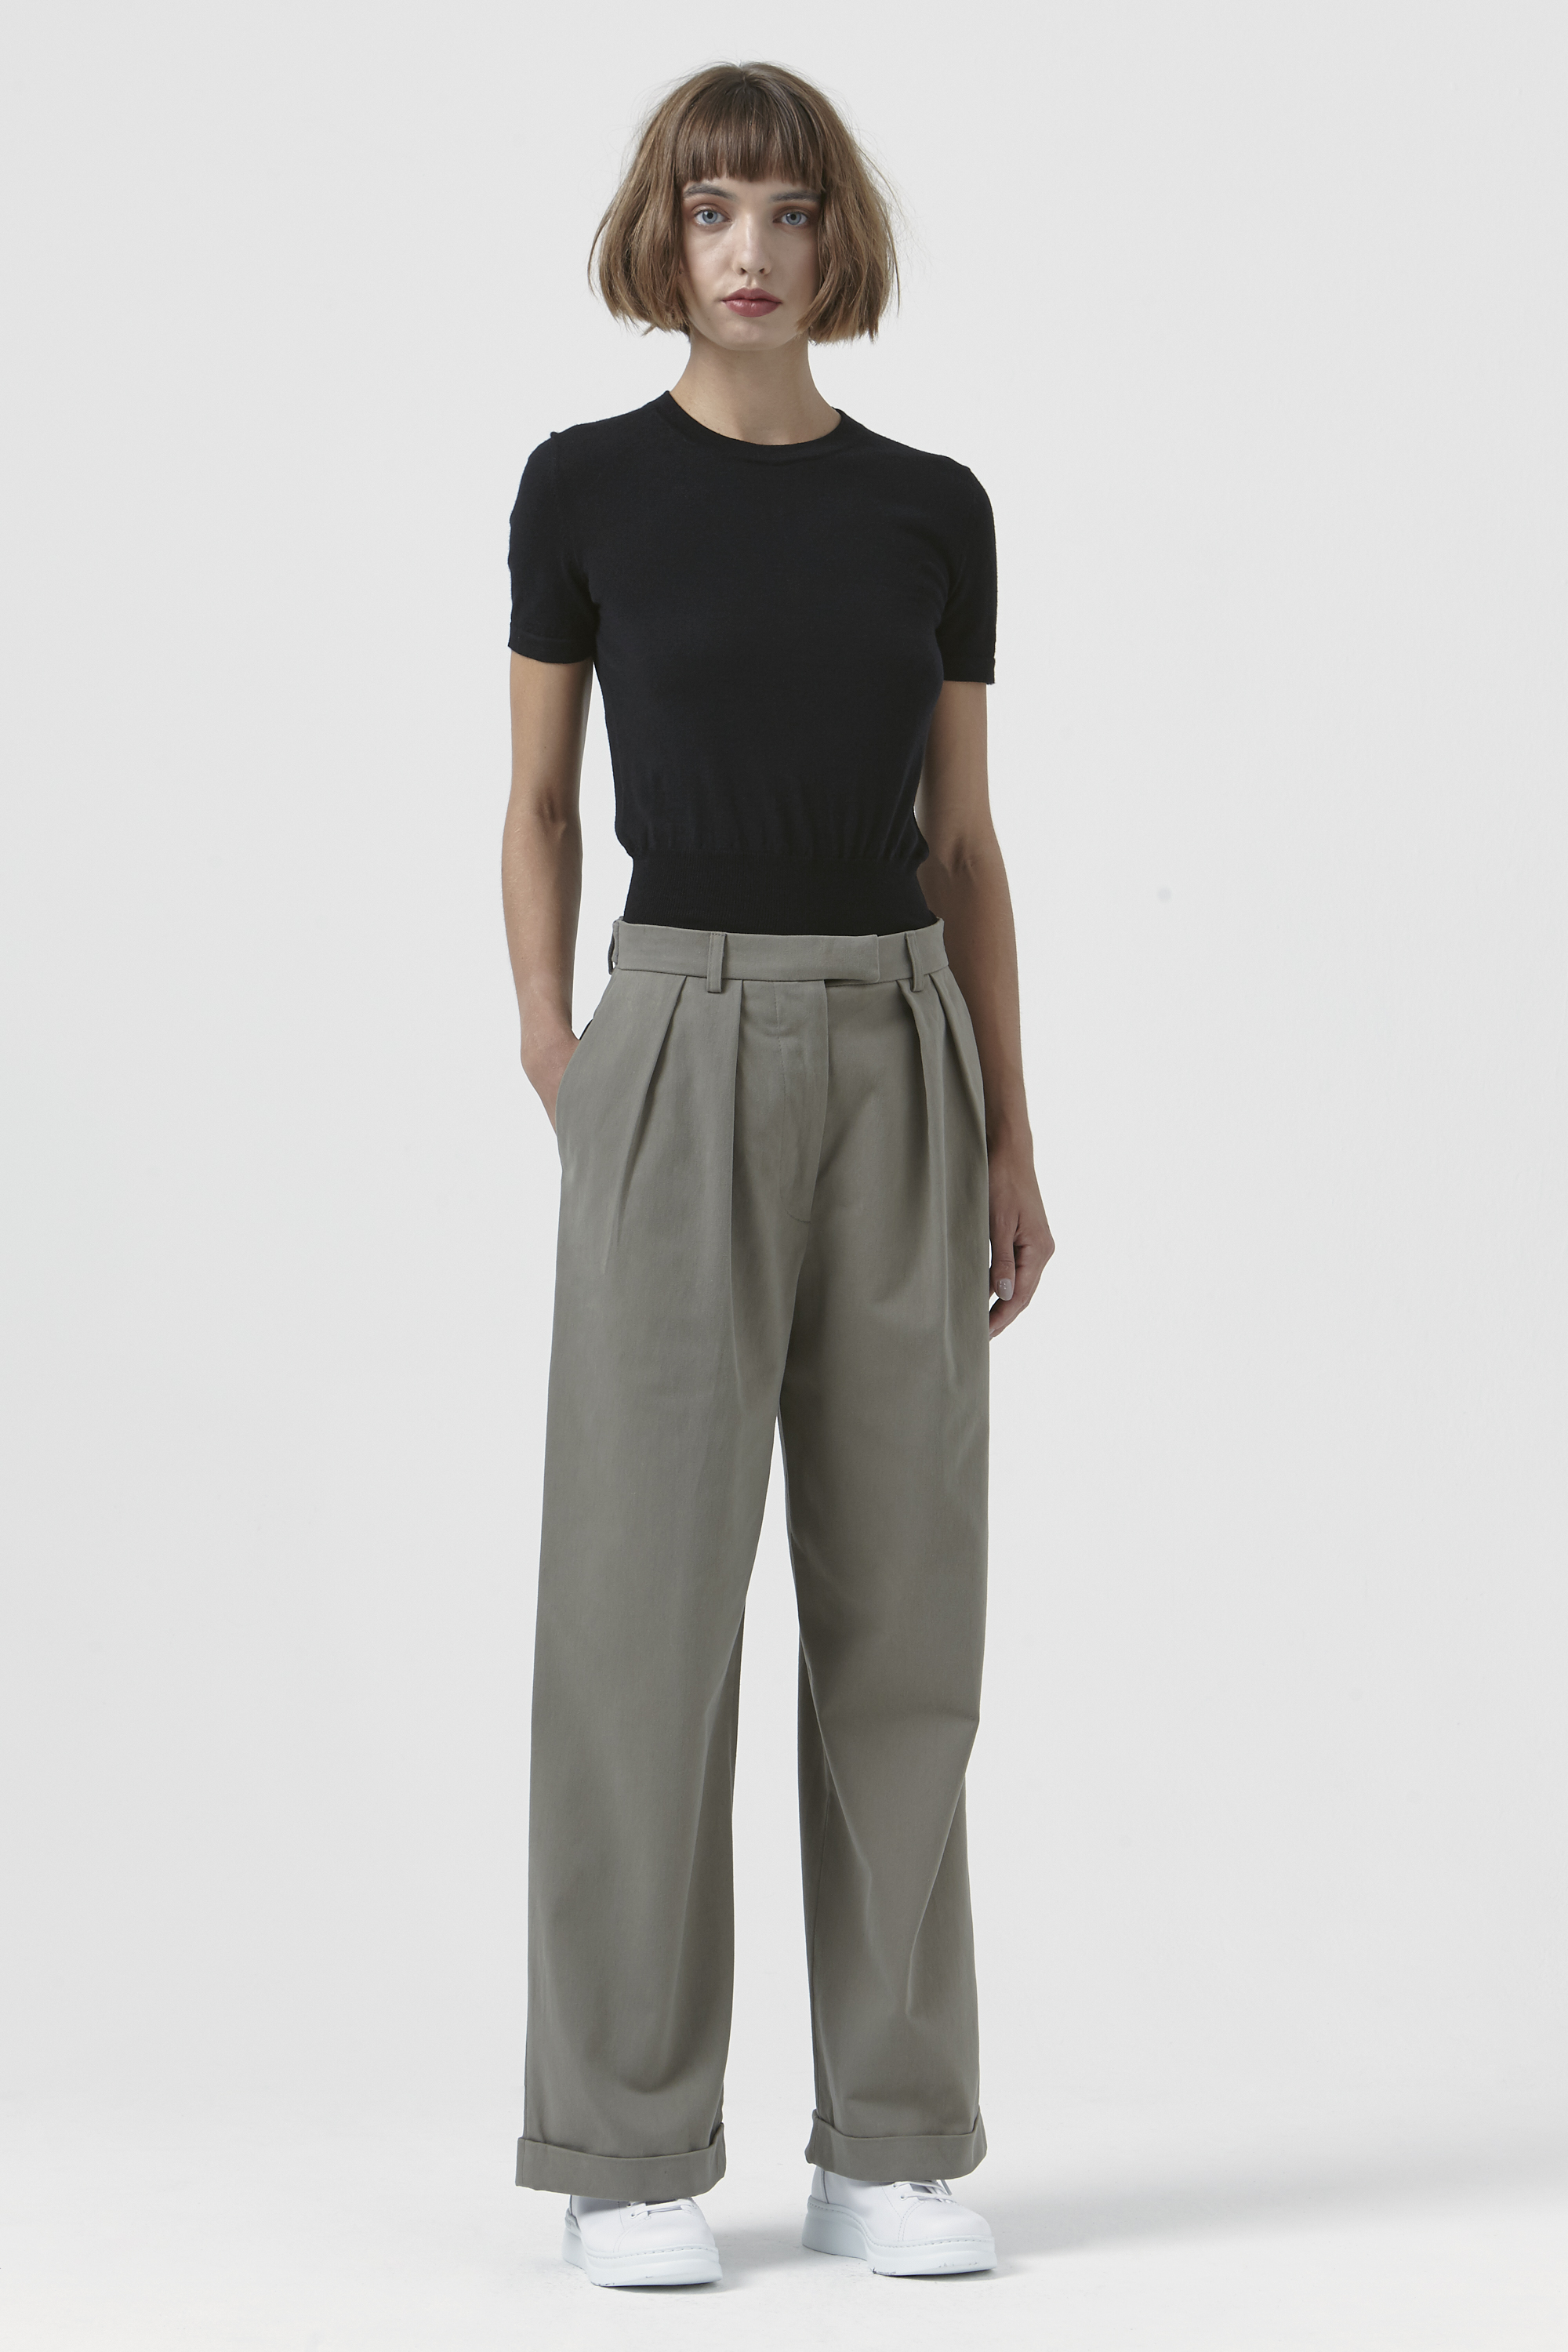 Camilla Khaki Organic Cotton Trousers